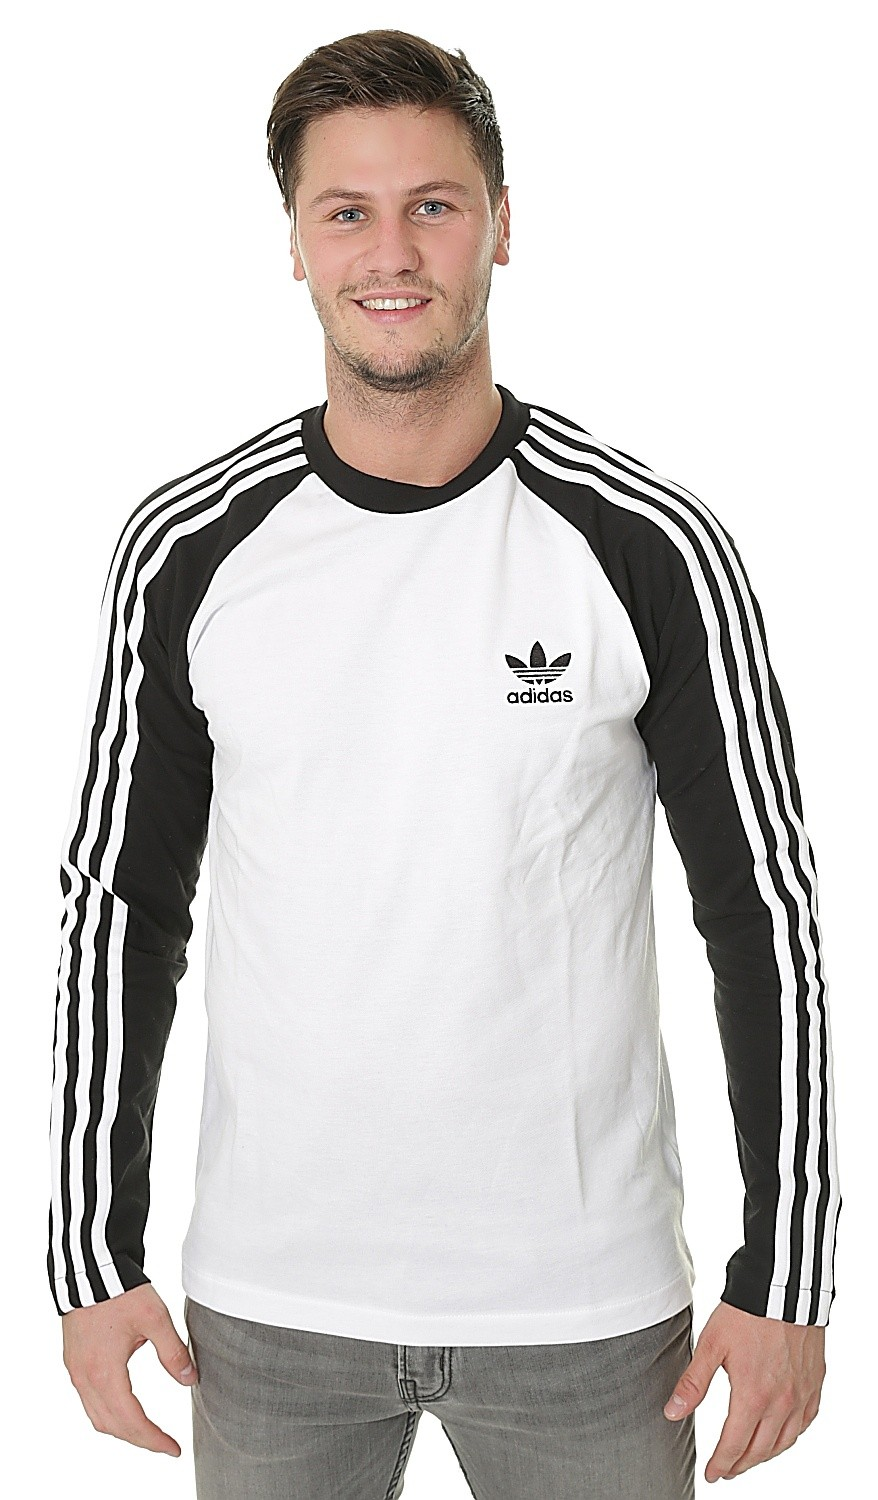 Camiseta adidas Originals 3 Stripes LS snowboard negro